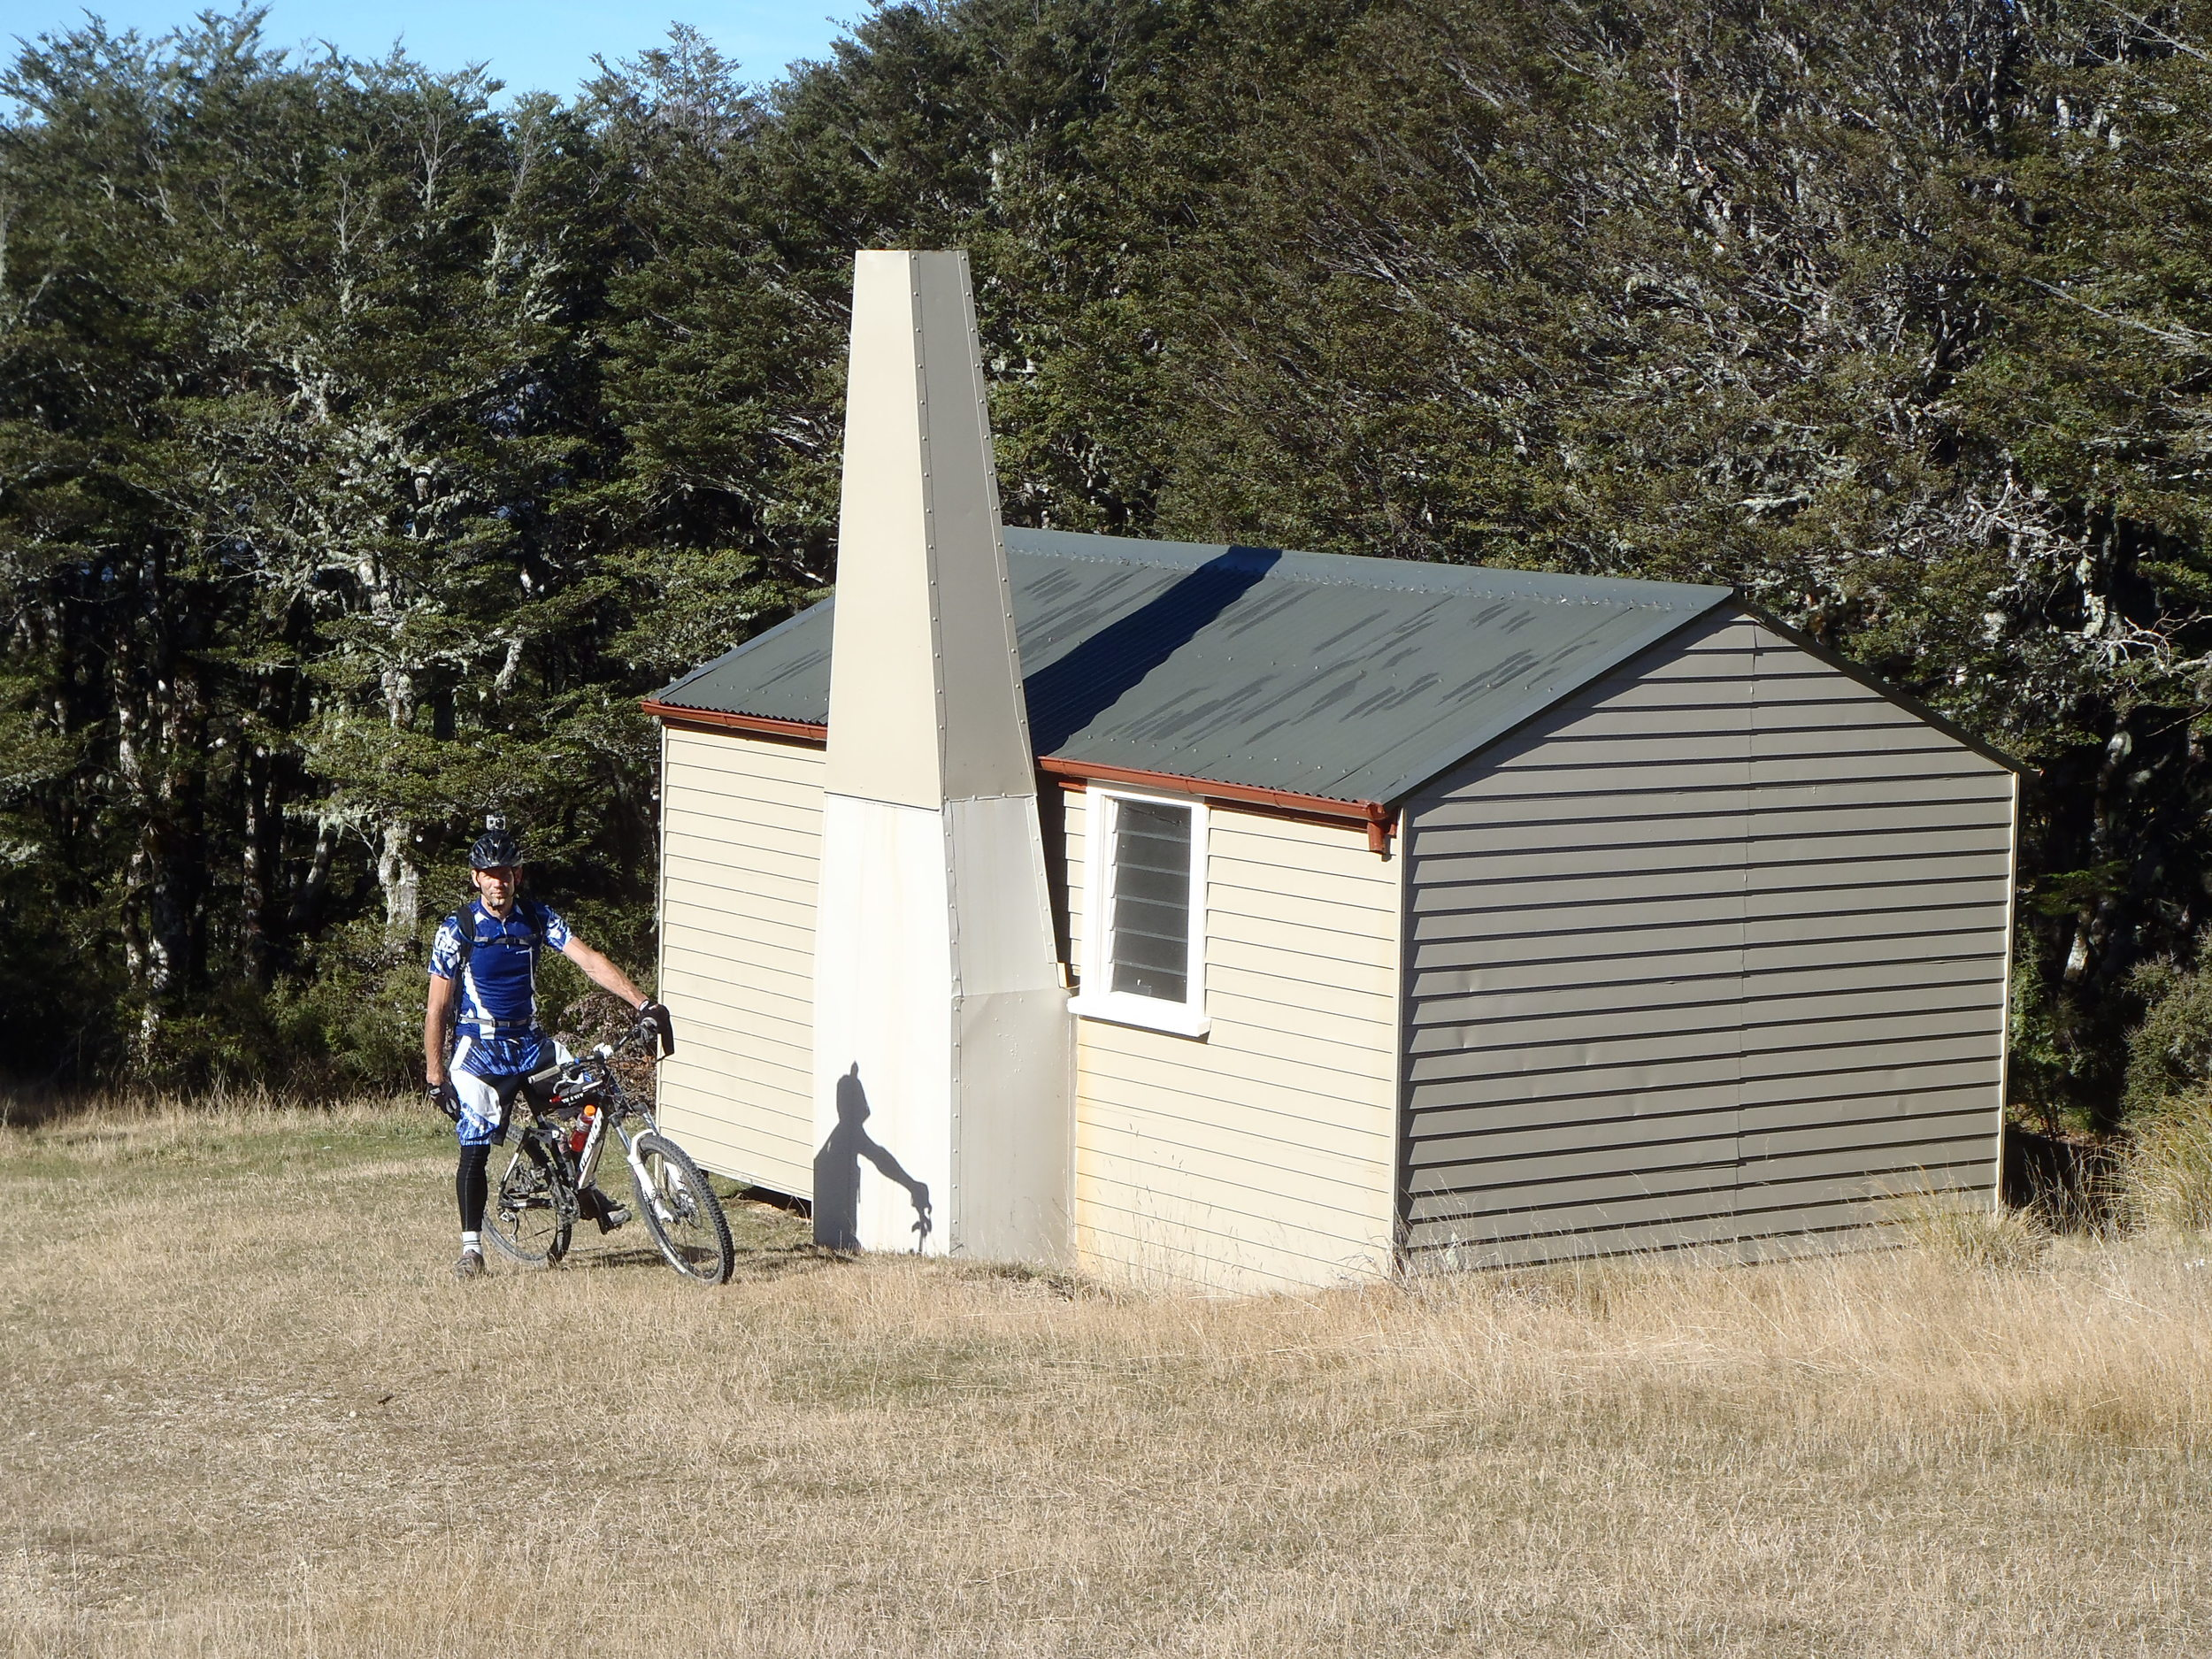 A stop in at the DOC Beeby's Hut along the way